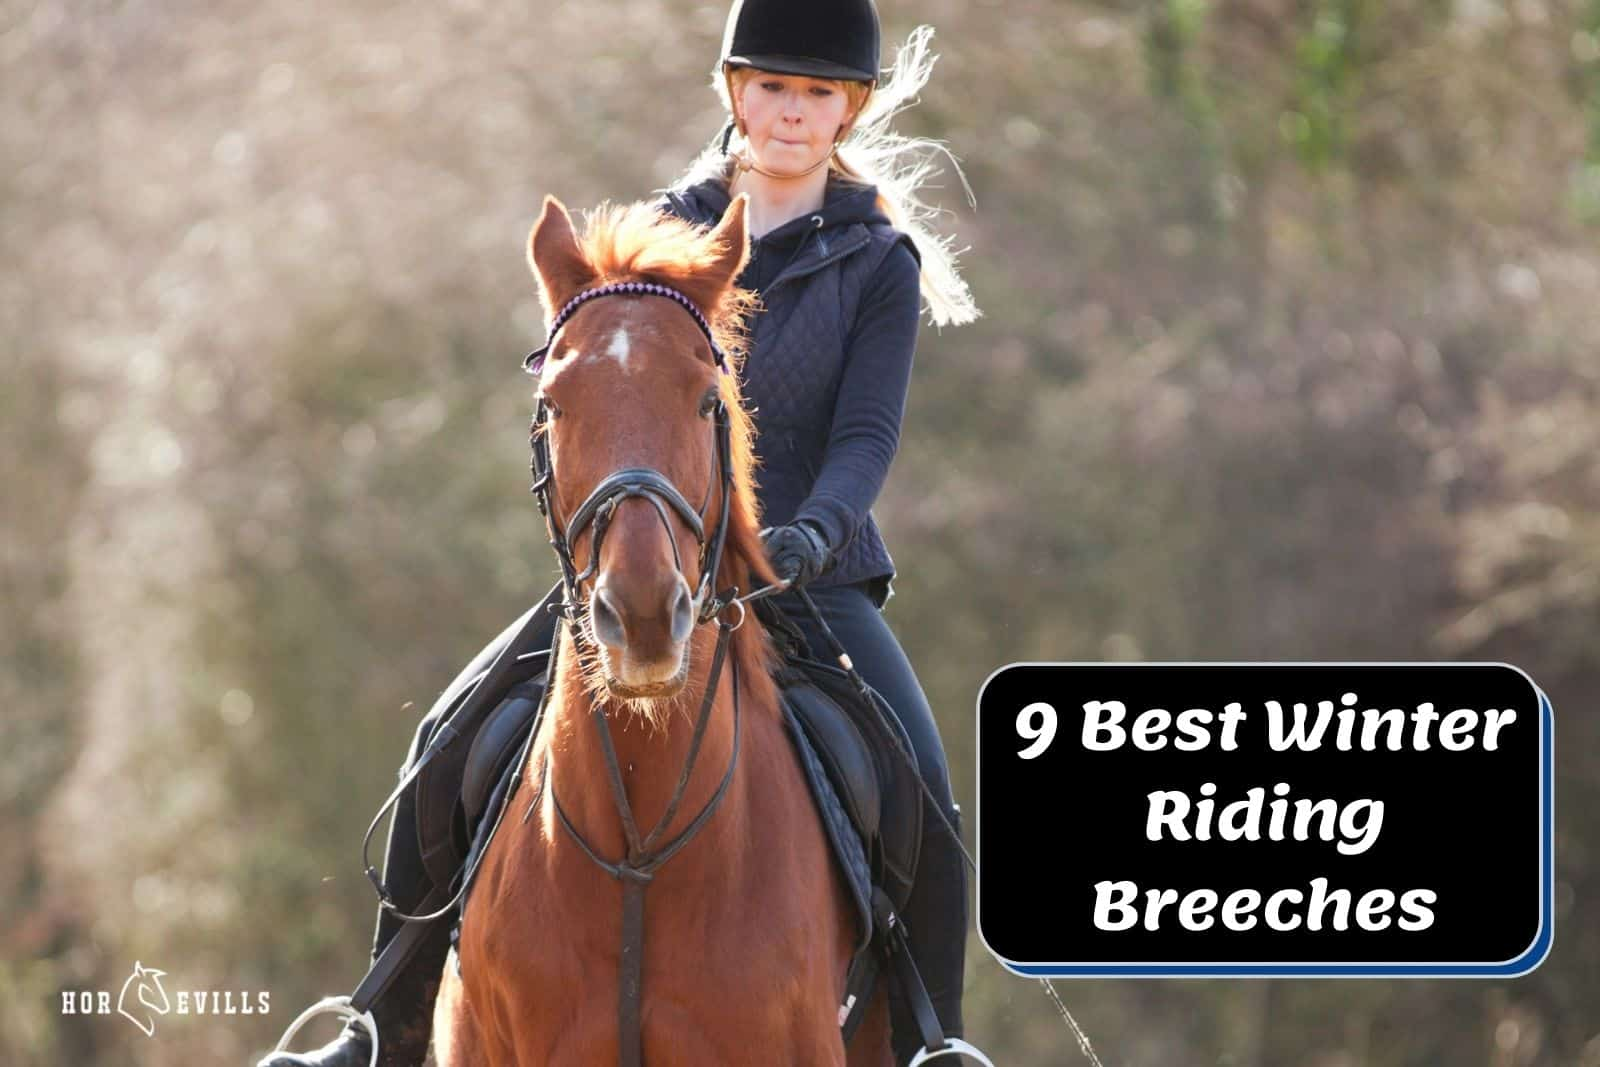 an equestrian lady in her best winter riding breeches